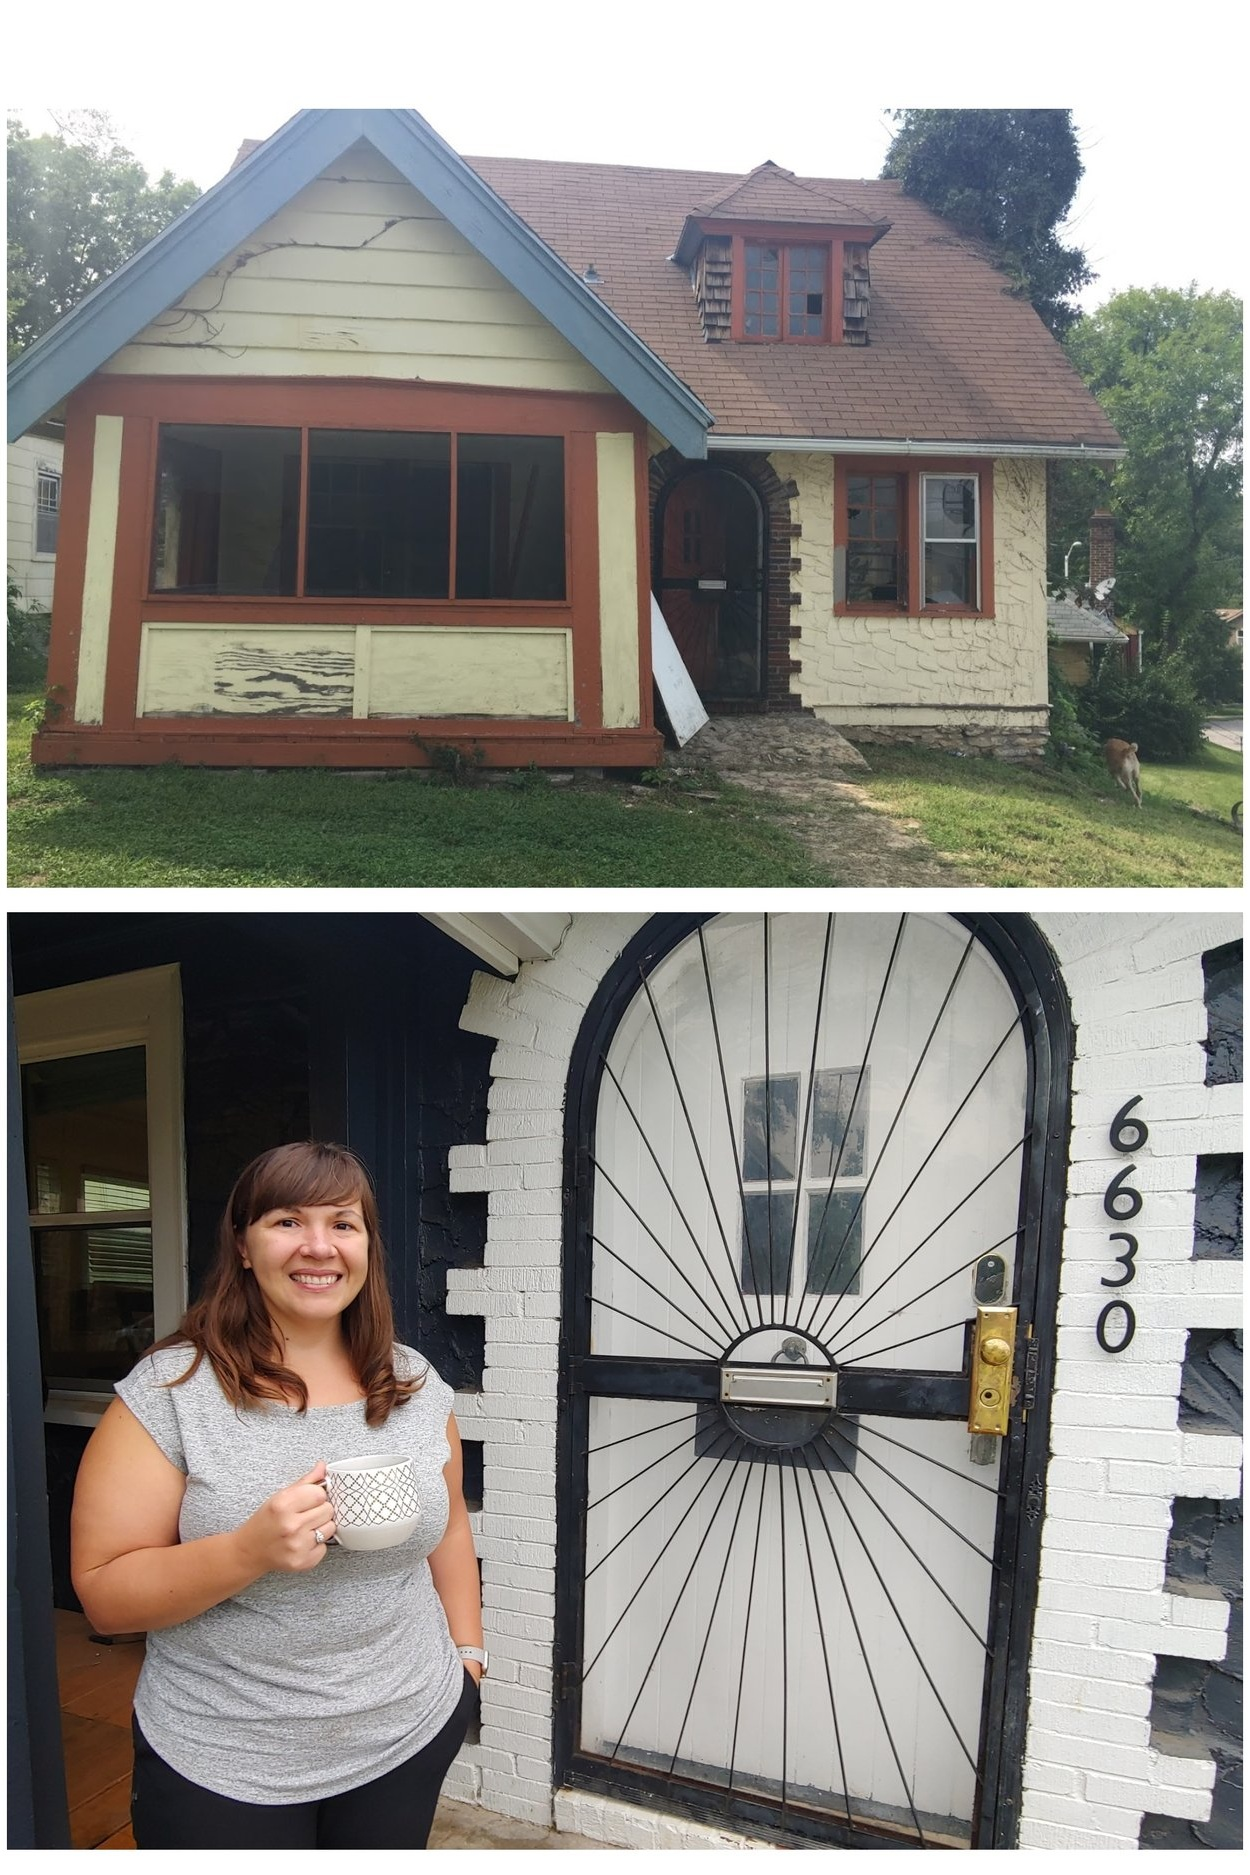 Katie Chepulis enjoys coffee out front of the home she bought and lives in on Broadmoor Road, after restoring it from the condition shown above.